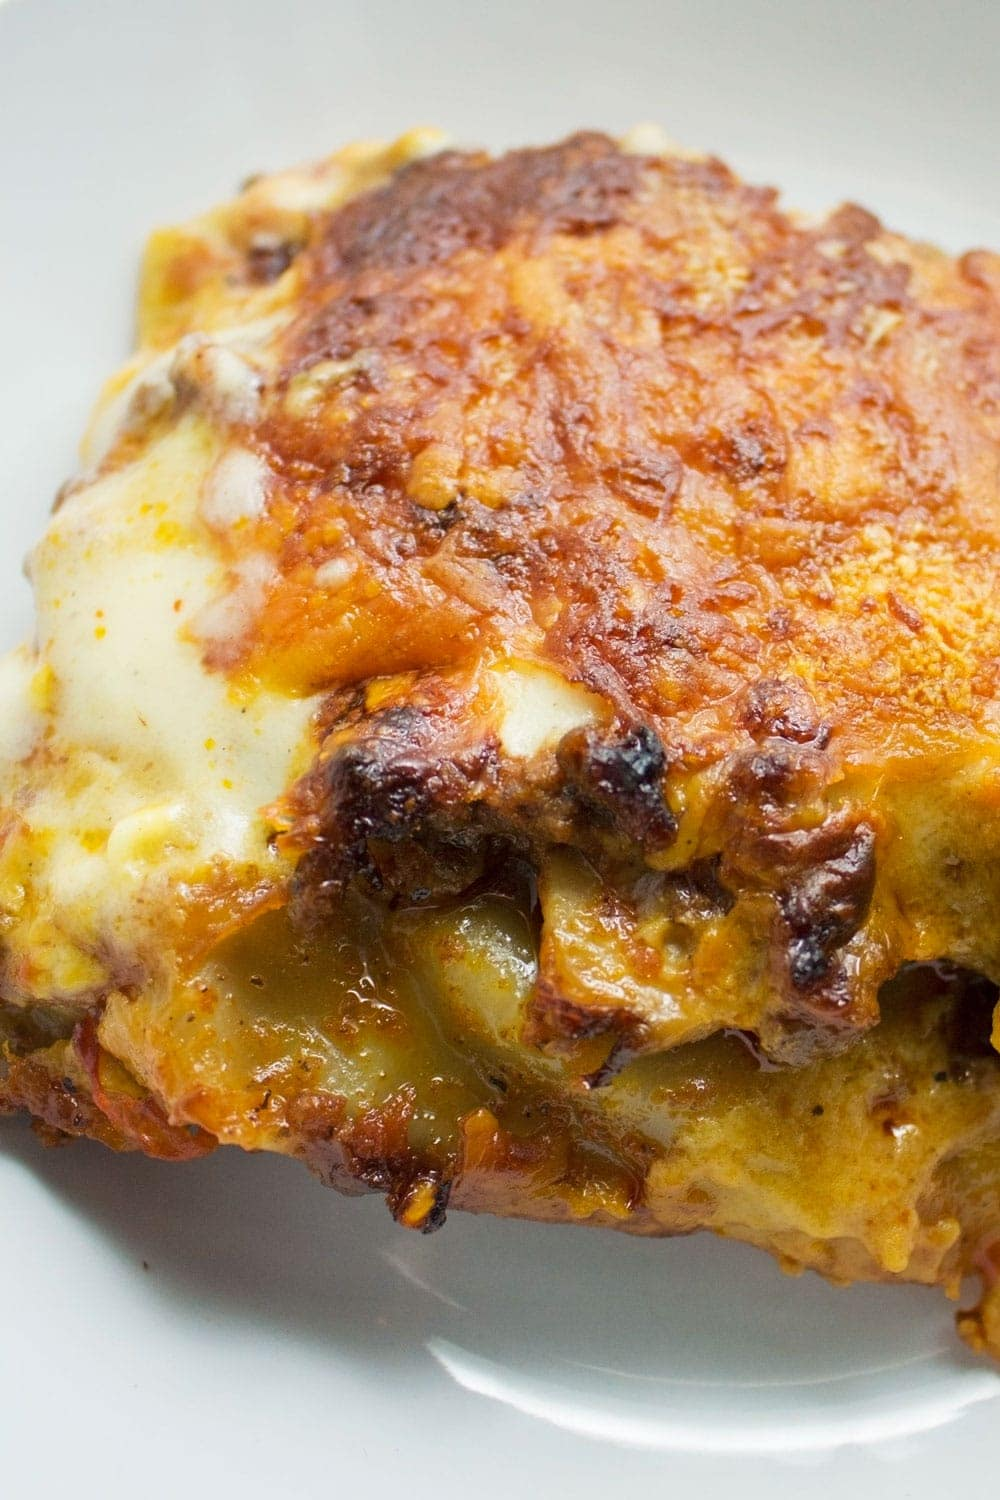 This recipe for a homemade classic beef lasagne is definitely worth the effort. There's nothing quite like a lasagne made from scratch!